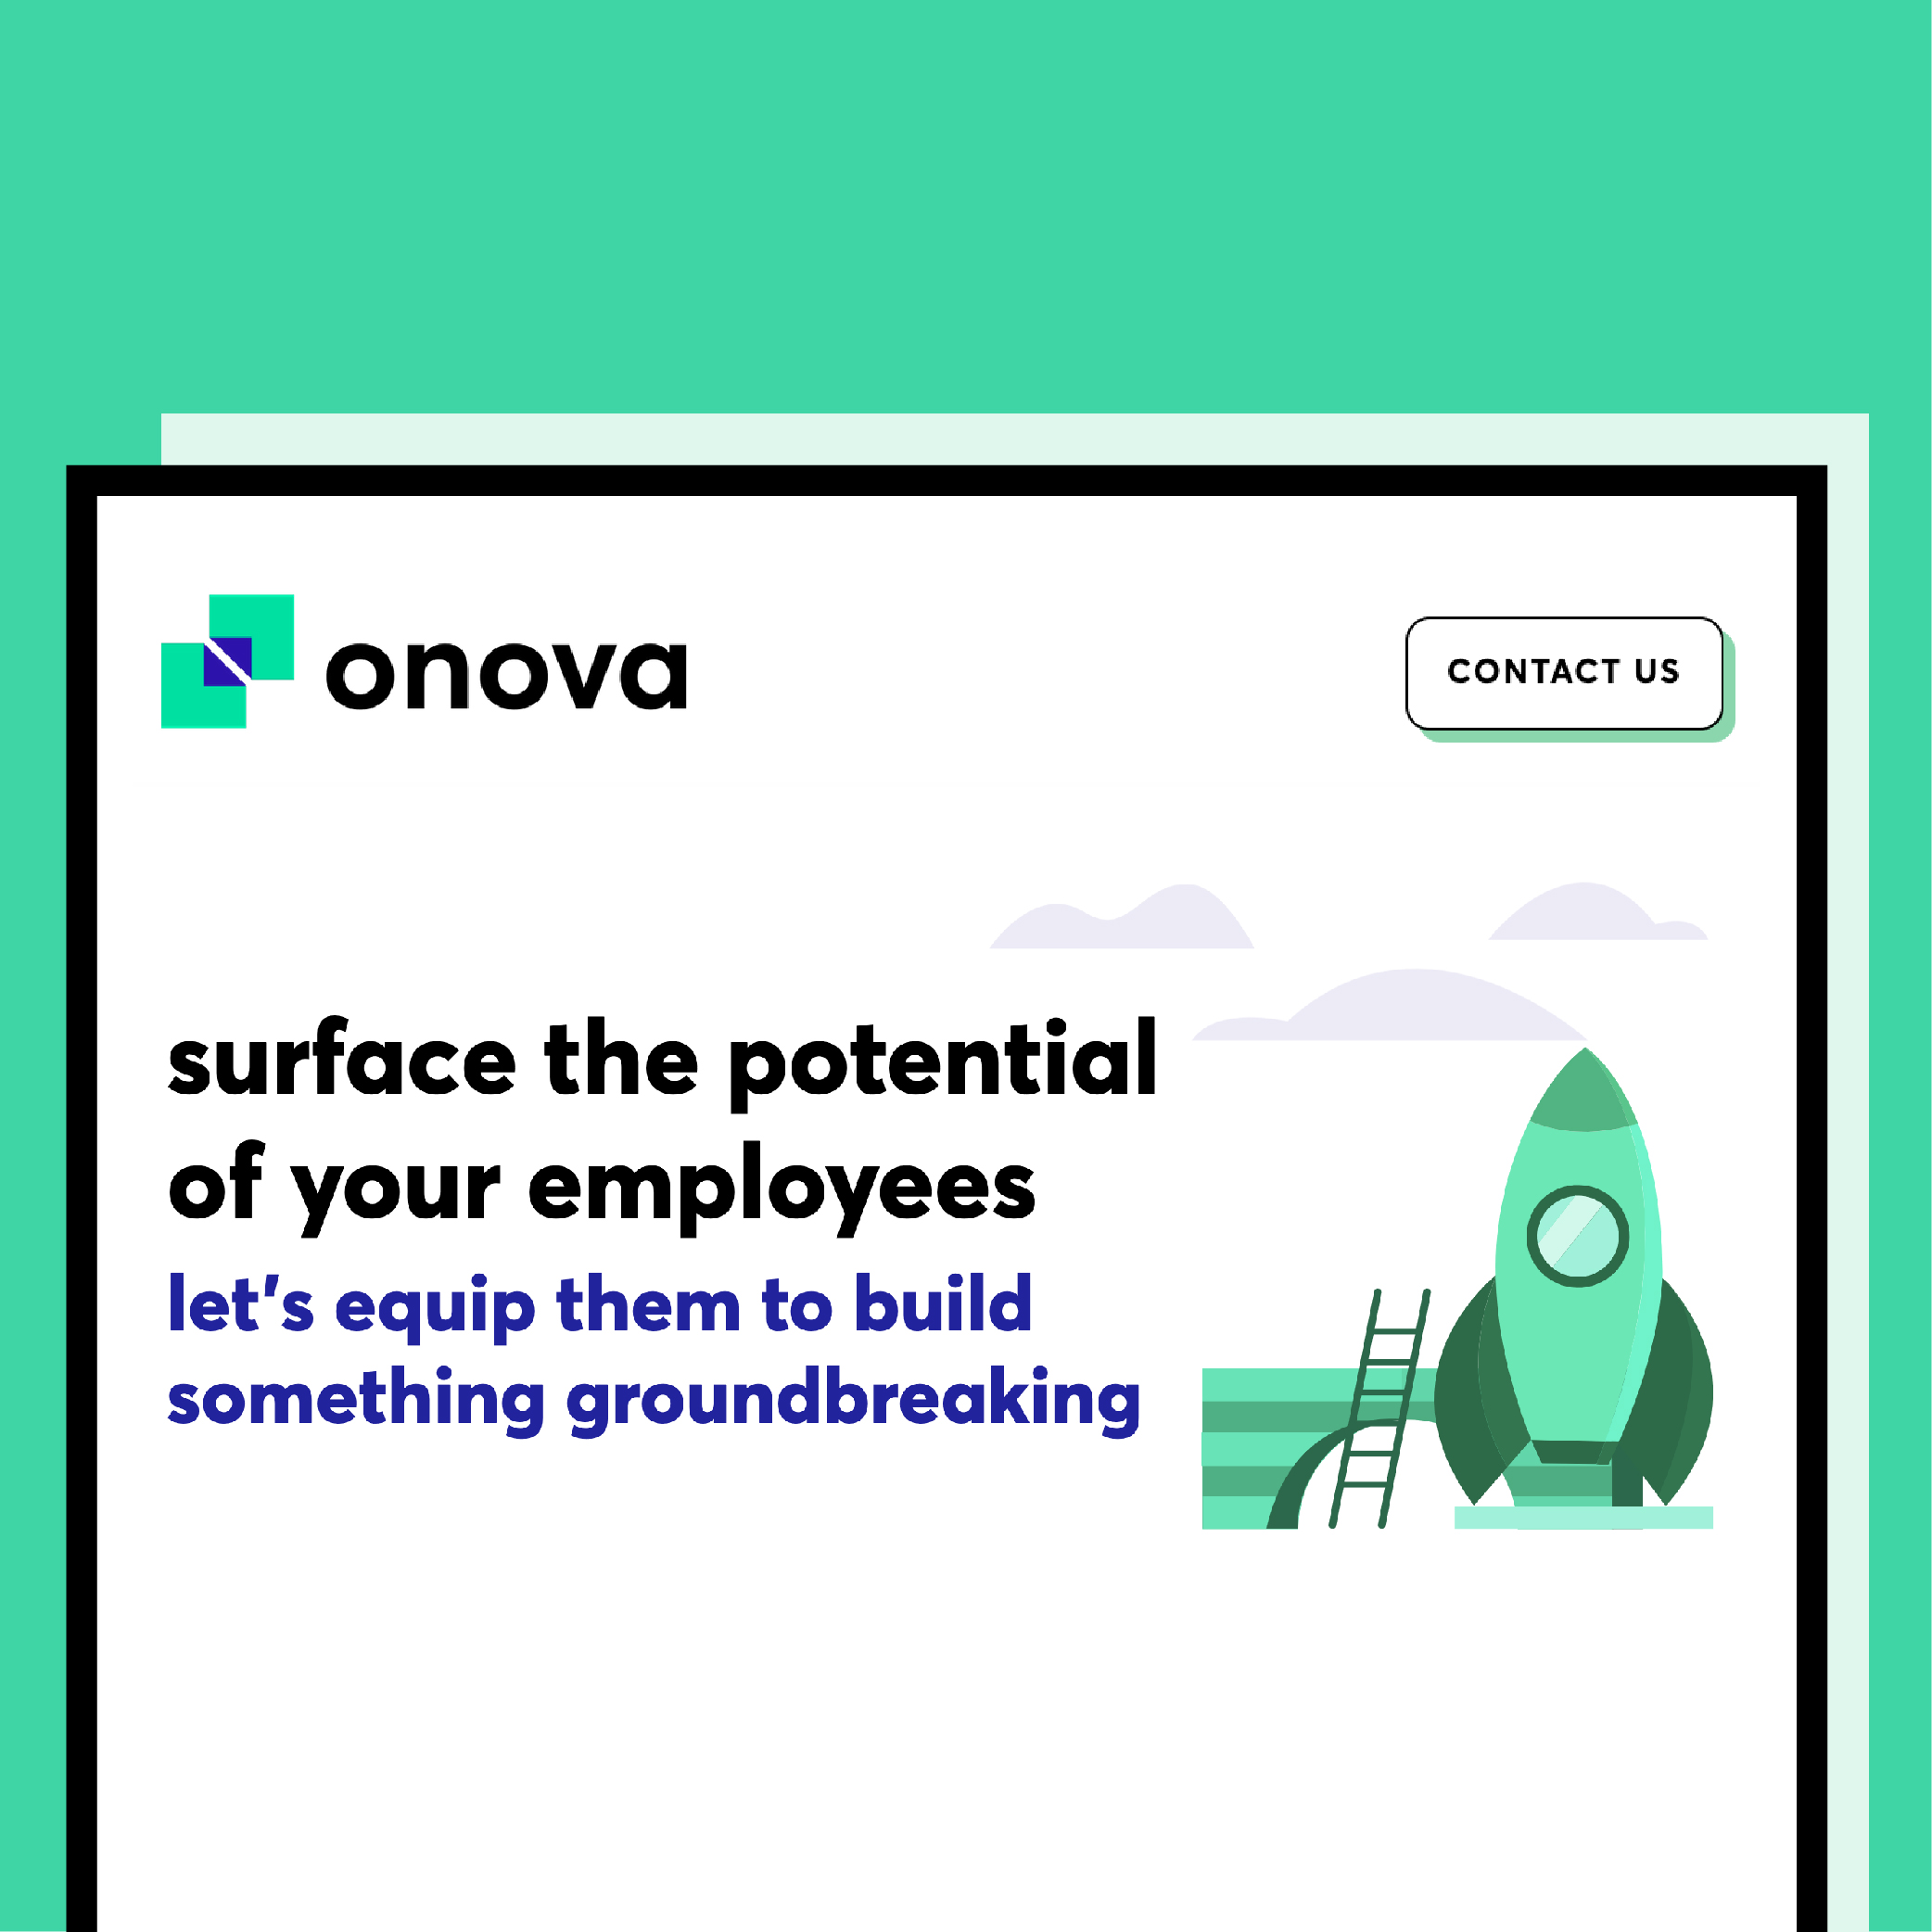 Amidst the global pandemic, when the world was on pause, we took a step back to reflect on our passions and ambitions as a startup. We strategize on services we're passionate about and we're restructuring our company for competitive growth. Onova is a young and ambitious consultancy – you've probably heard that phrasing a lot, but we have the history to prove it. Read on to learn about why and how we are rebranding as an innovation consultancy.